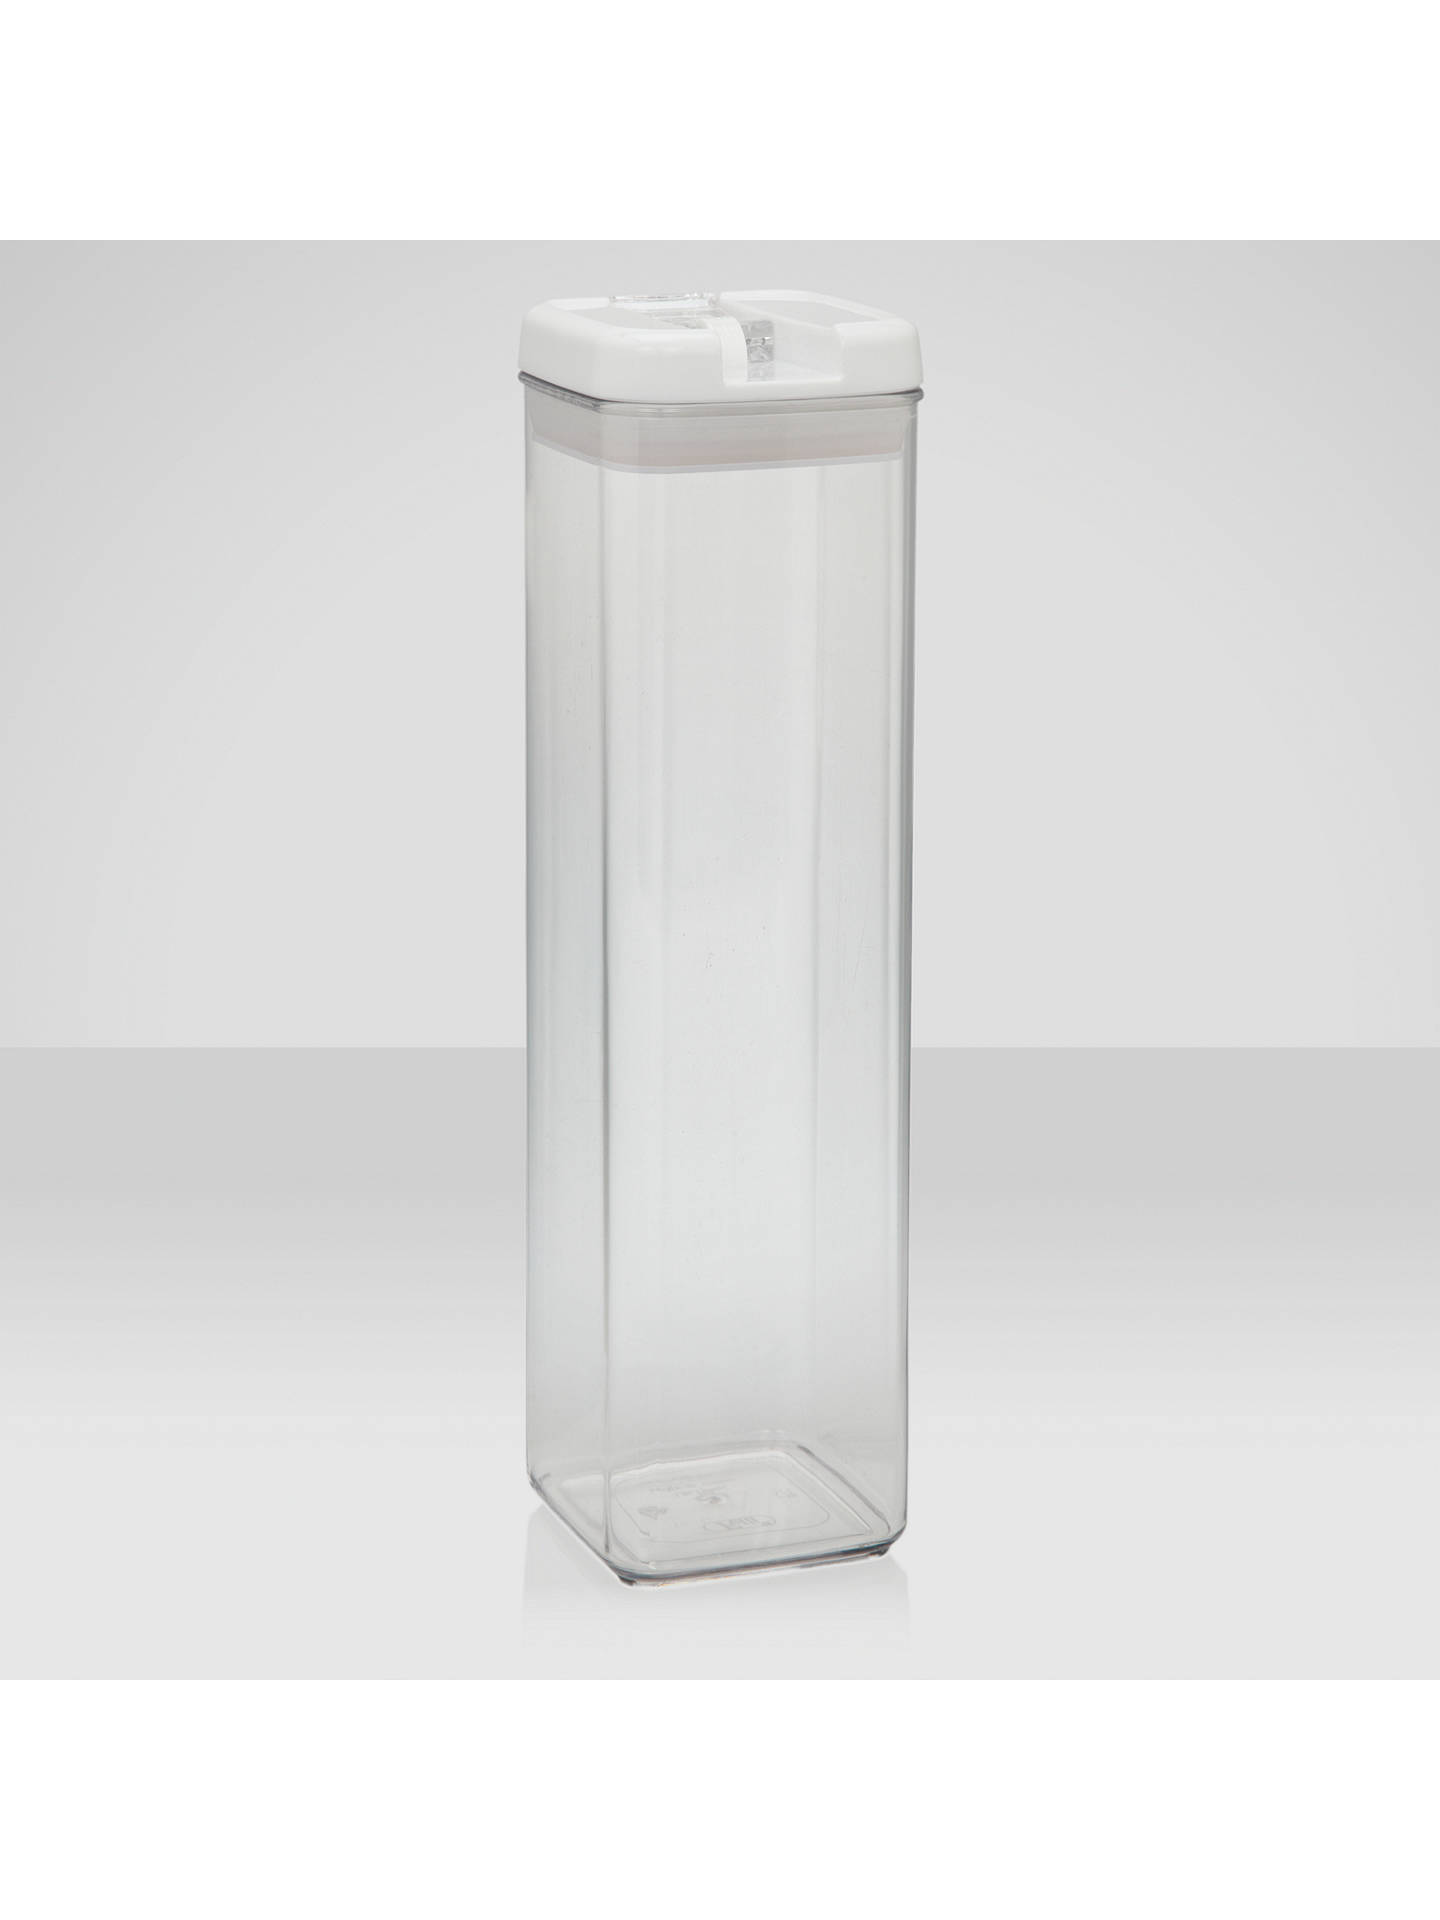 Buy John Lewis & Partners Flip-Tite Tall Storage Container, 1.9L Online at johnlewis.com